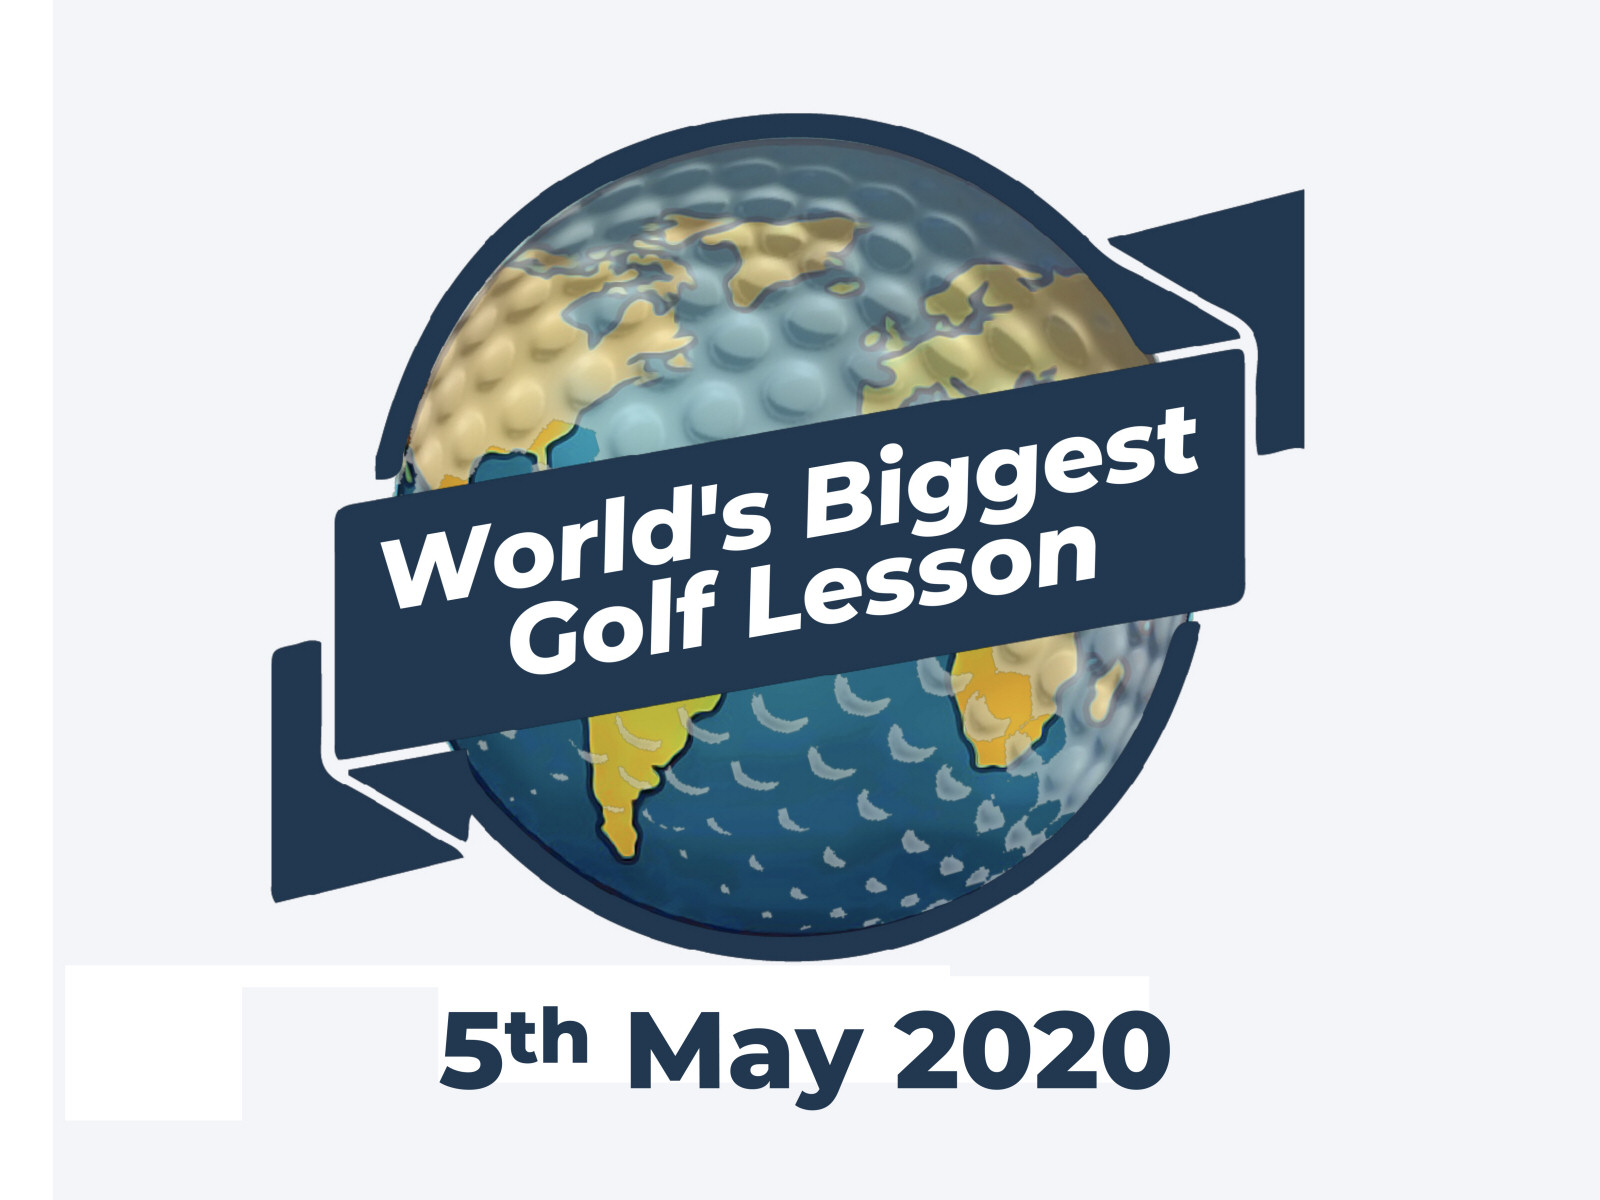 World's biggest golf lesson will take place on May 5